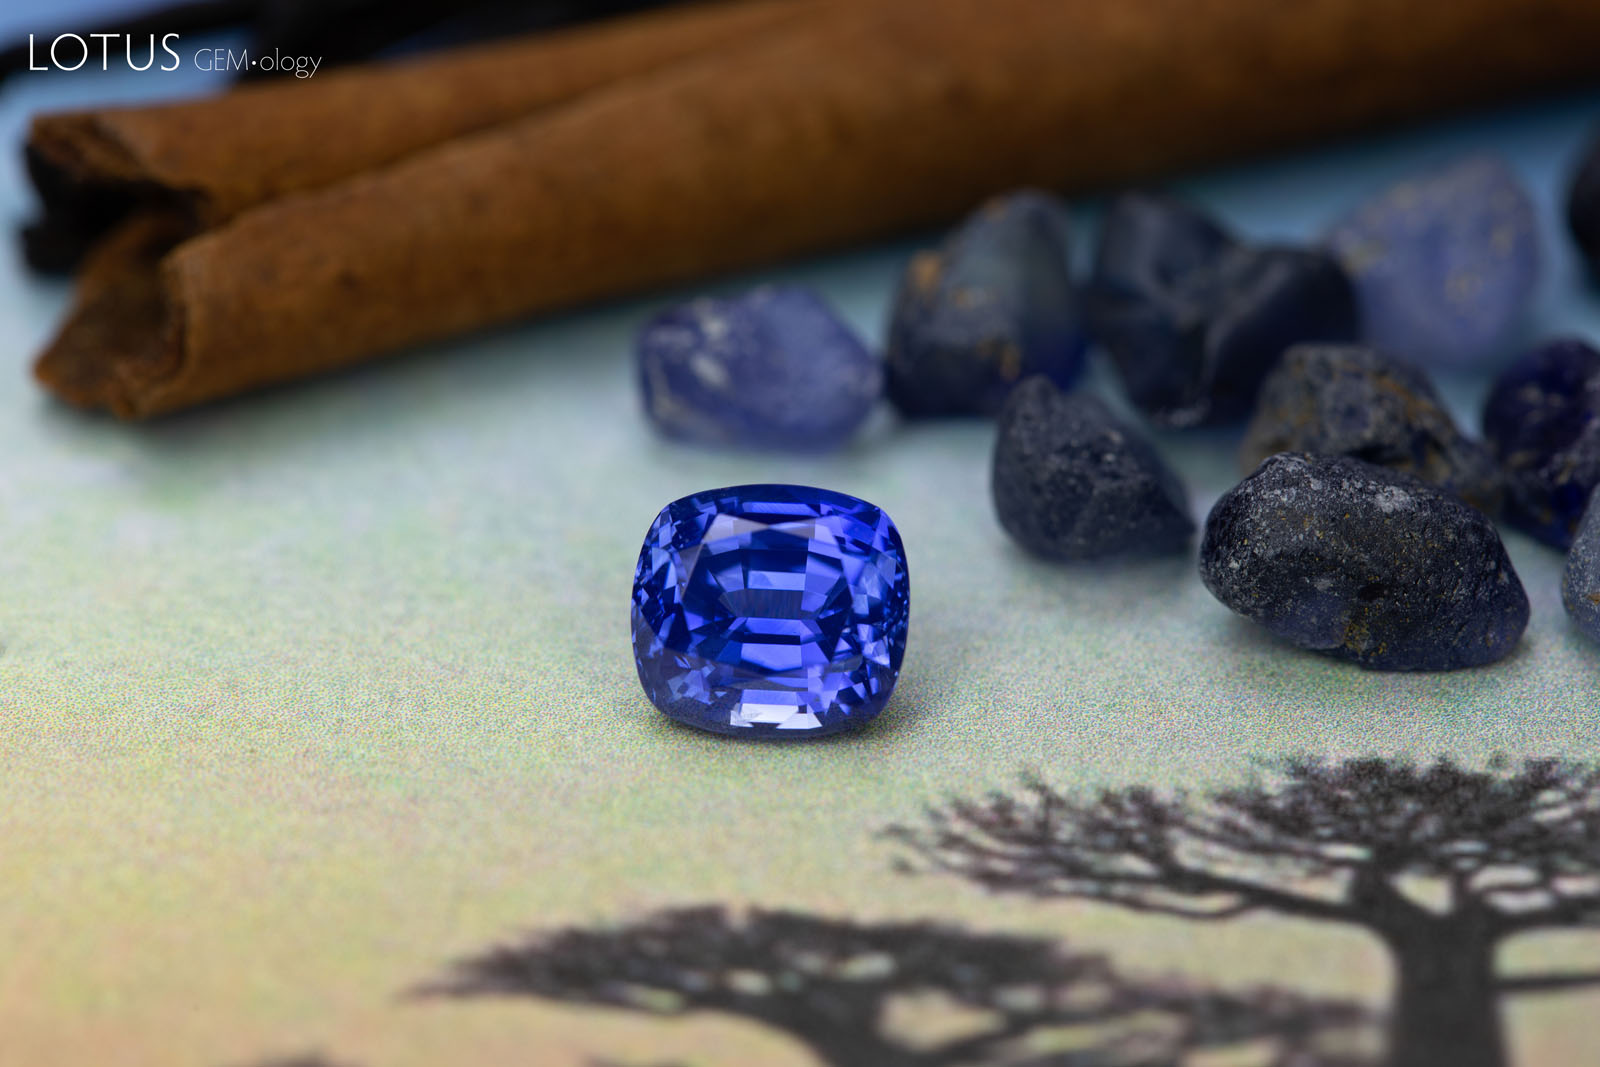 Sapphires from Madagascar: a beautiful 3.29 ct untreated faceted stone and an assortment of rough in the background. Madagascar has produced many high-quality stones in the last few years and is quickly gaining a reputation for fine sapphires equal to any on the planet. Photo by Wimon Manototkul, sapphire courtesy of Neil Doohan.